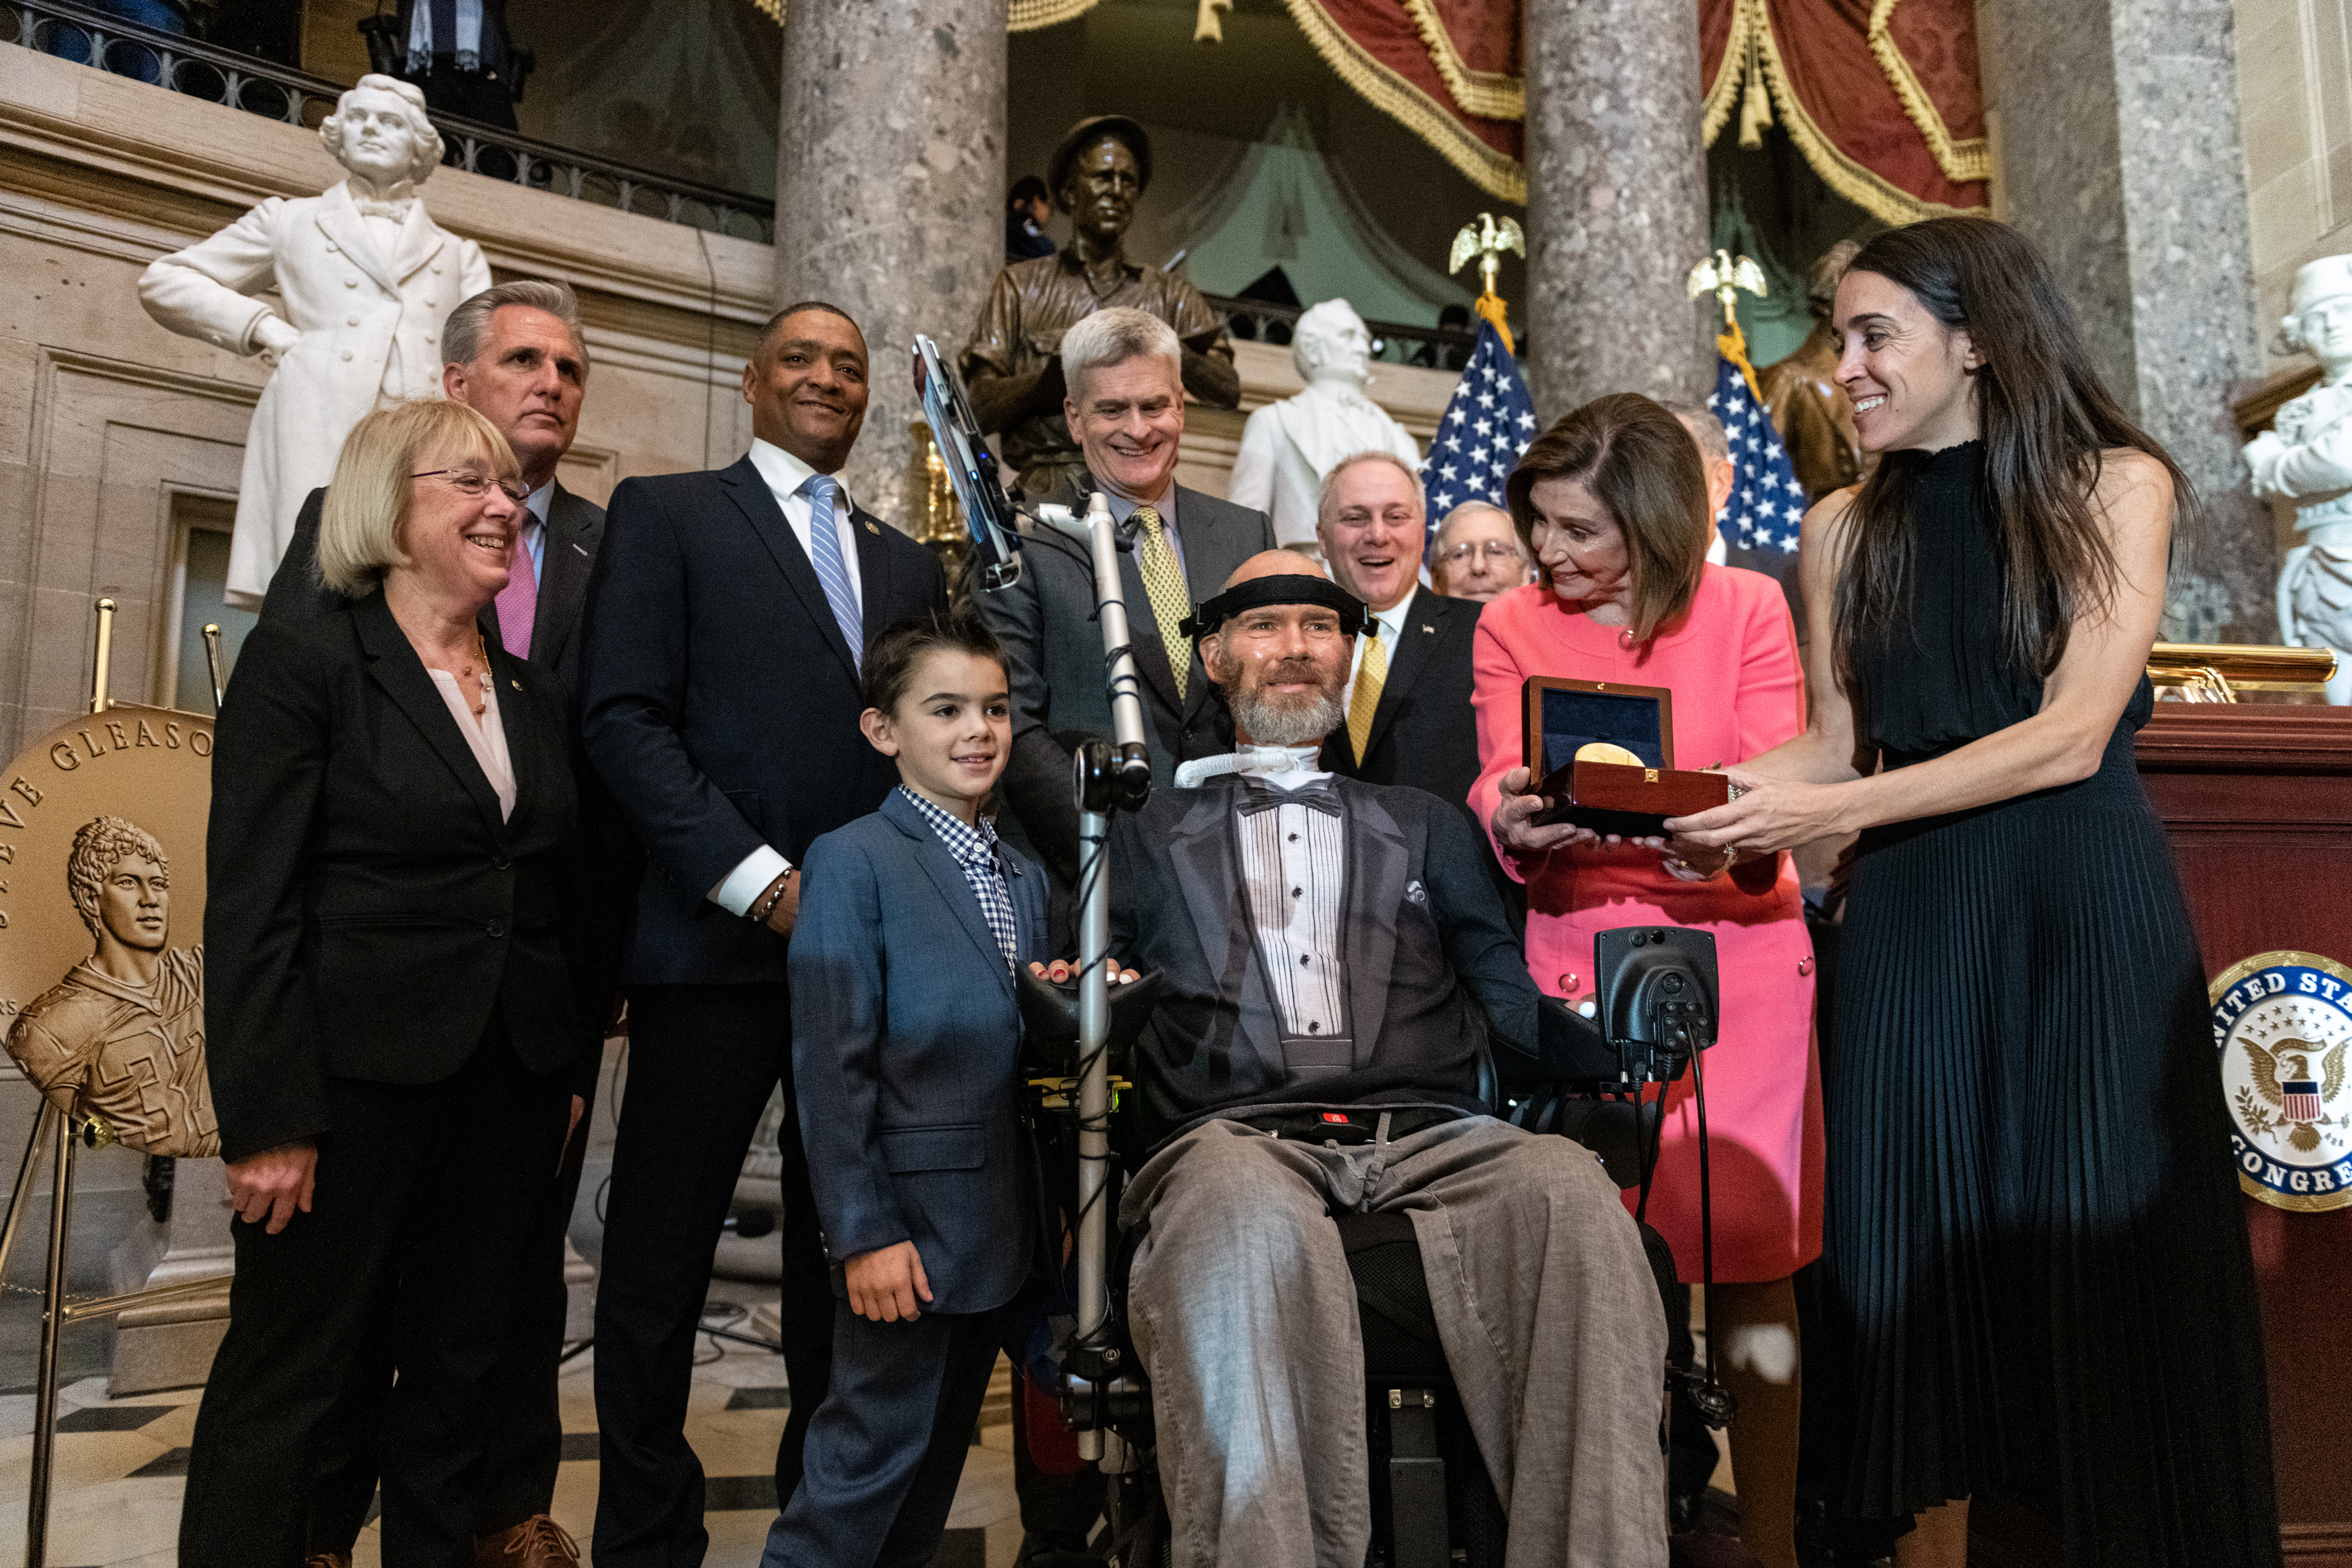 Steve Gleason, members of Congress, and the Gleason family gather around Steve.